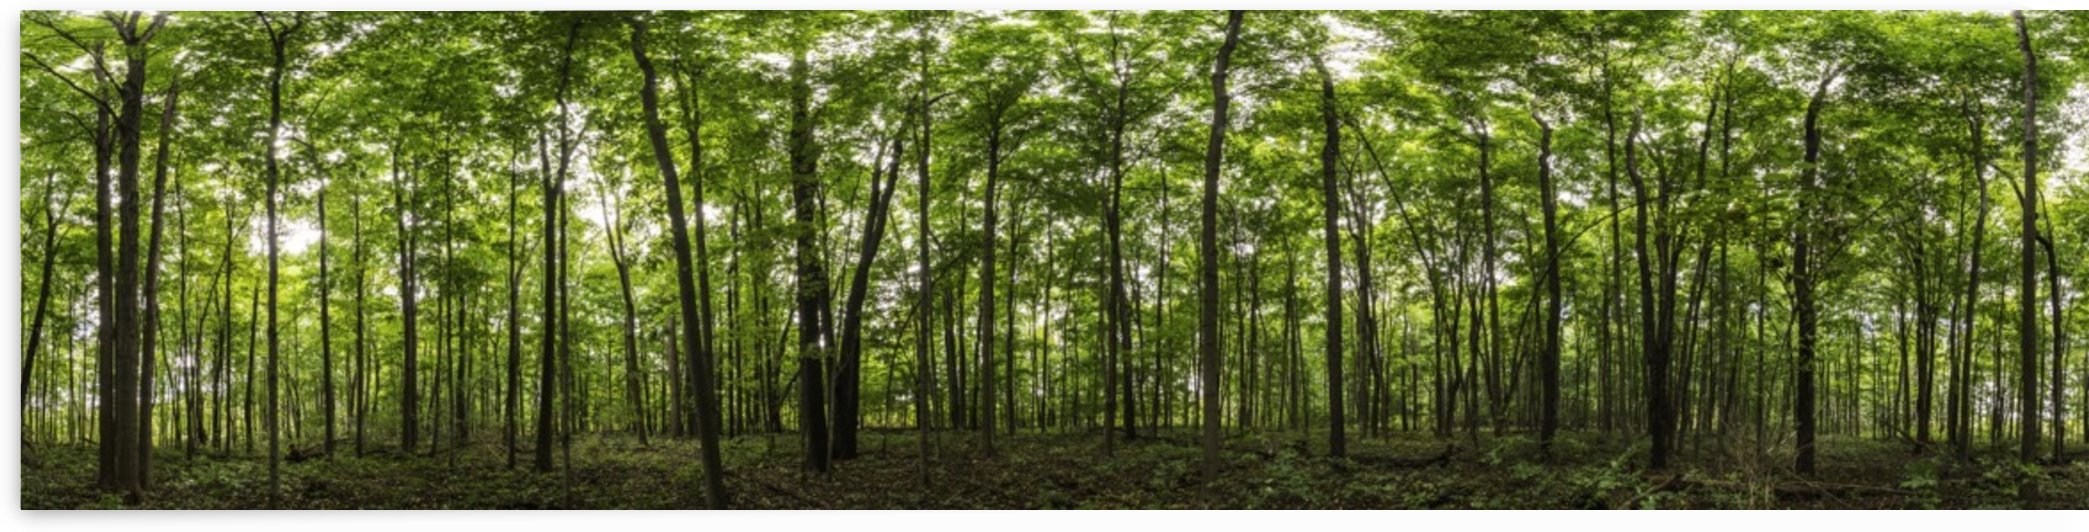 Panoramic image of a deciduous forest; Ontario, Canada by PacificStock